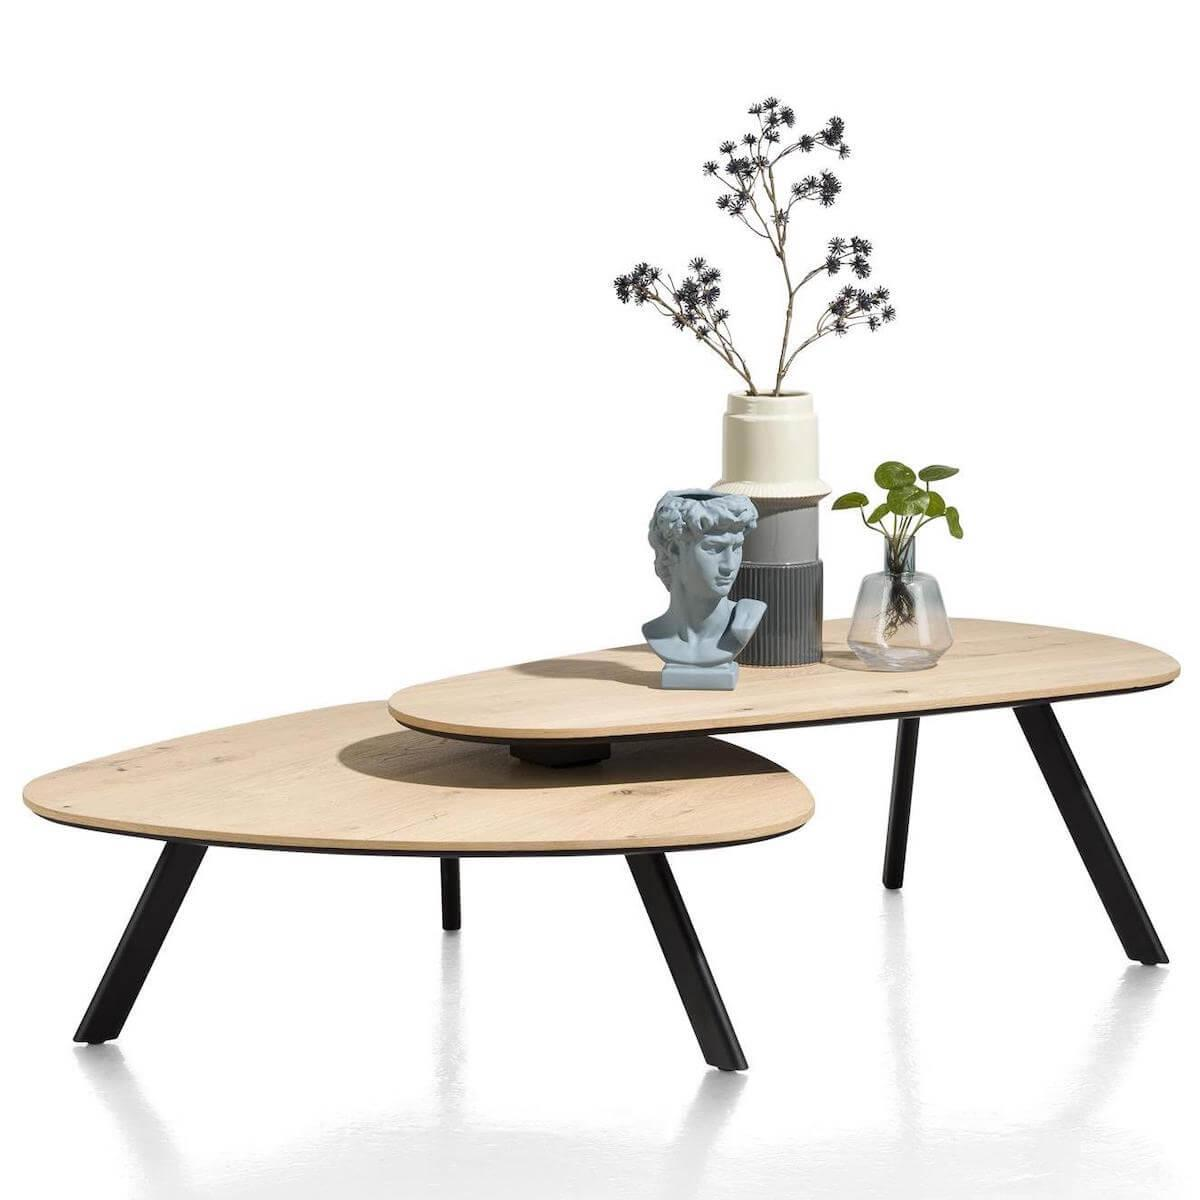 Table basse LIVADA Henders & Hazel naturel